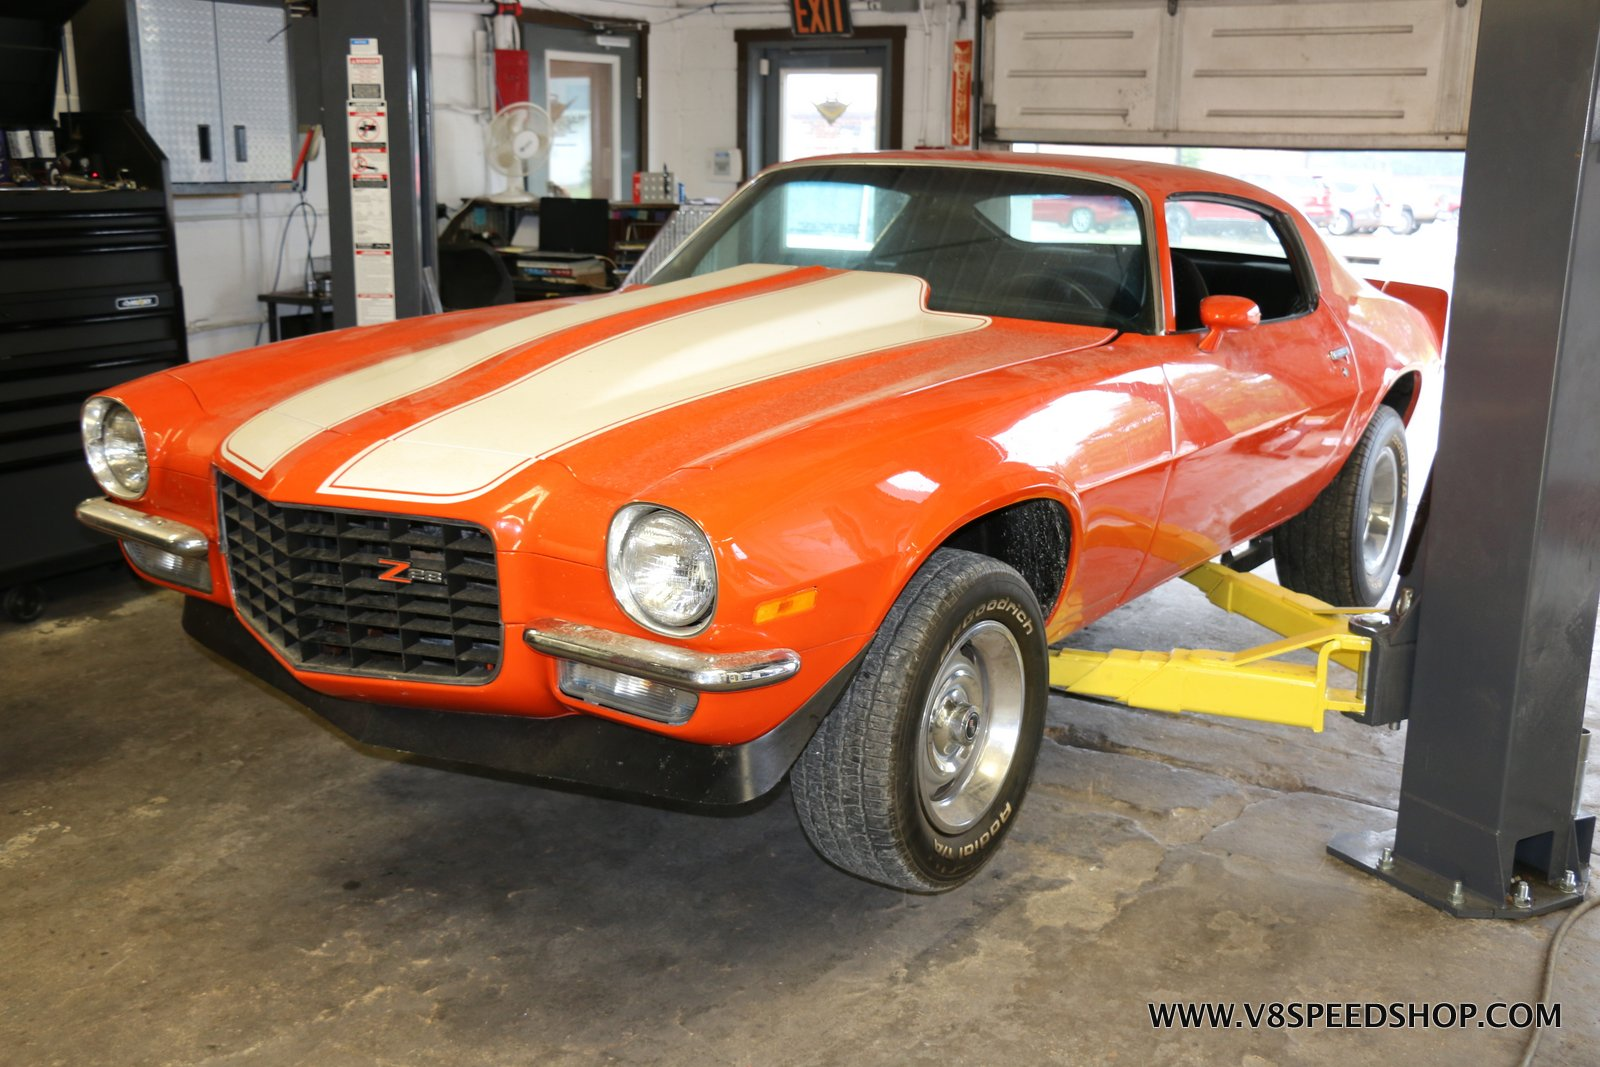 1971 Chevrolet Camaro Maintenance and Performance Upgrade Photo Gallery